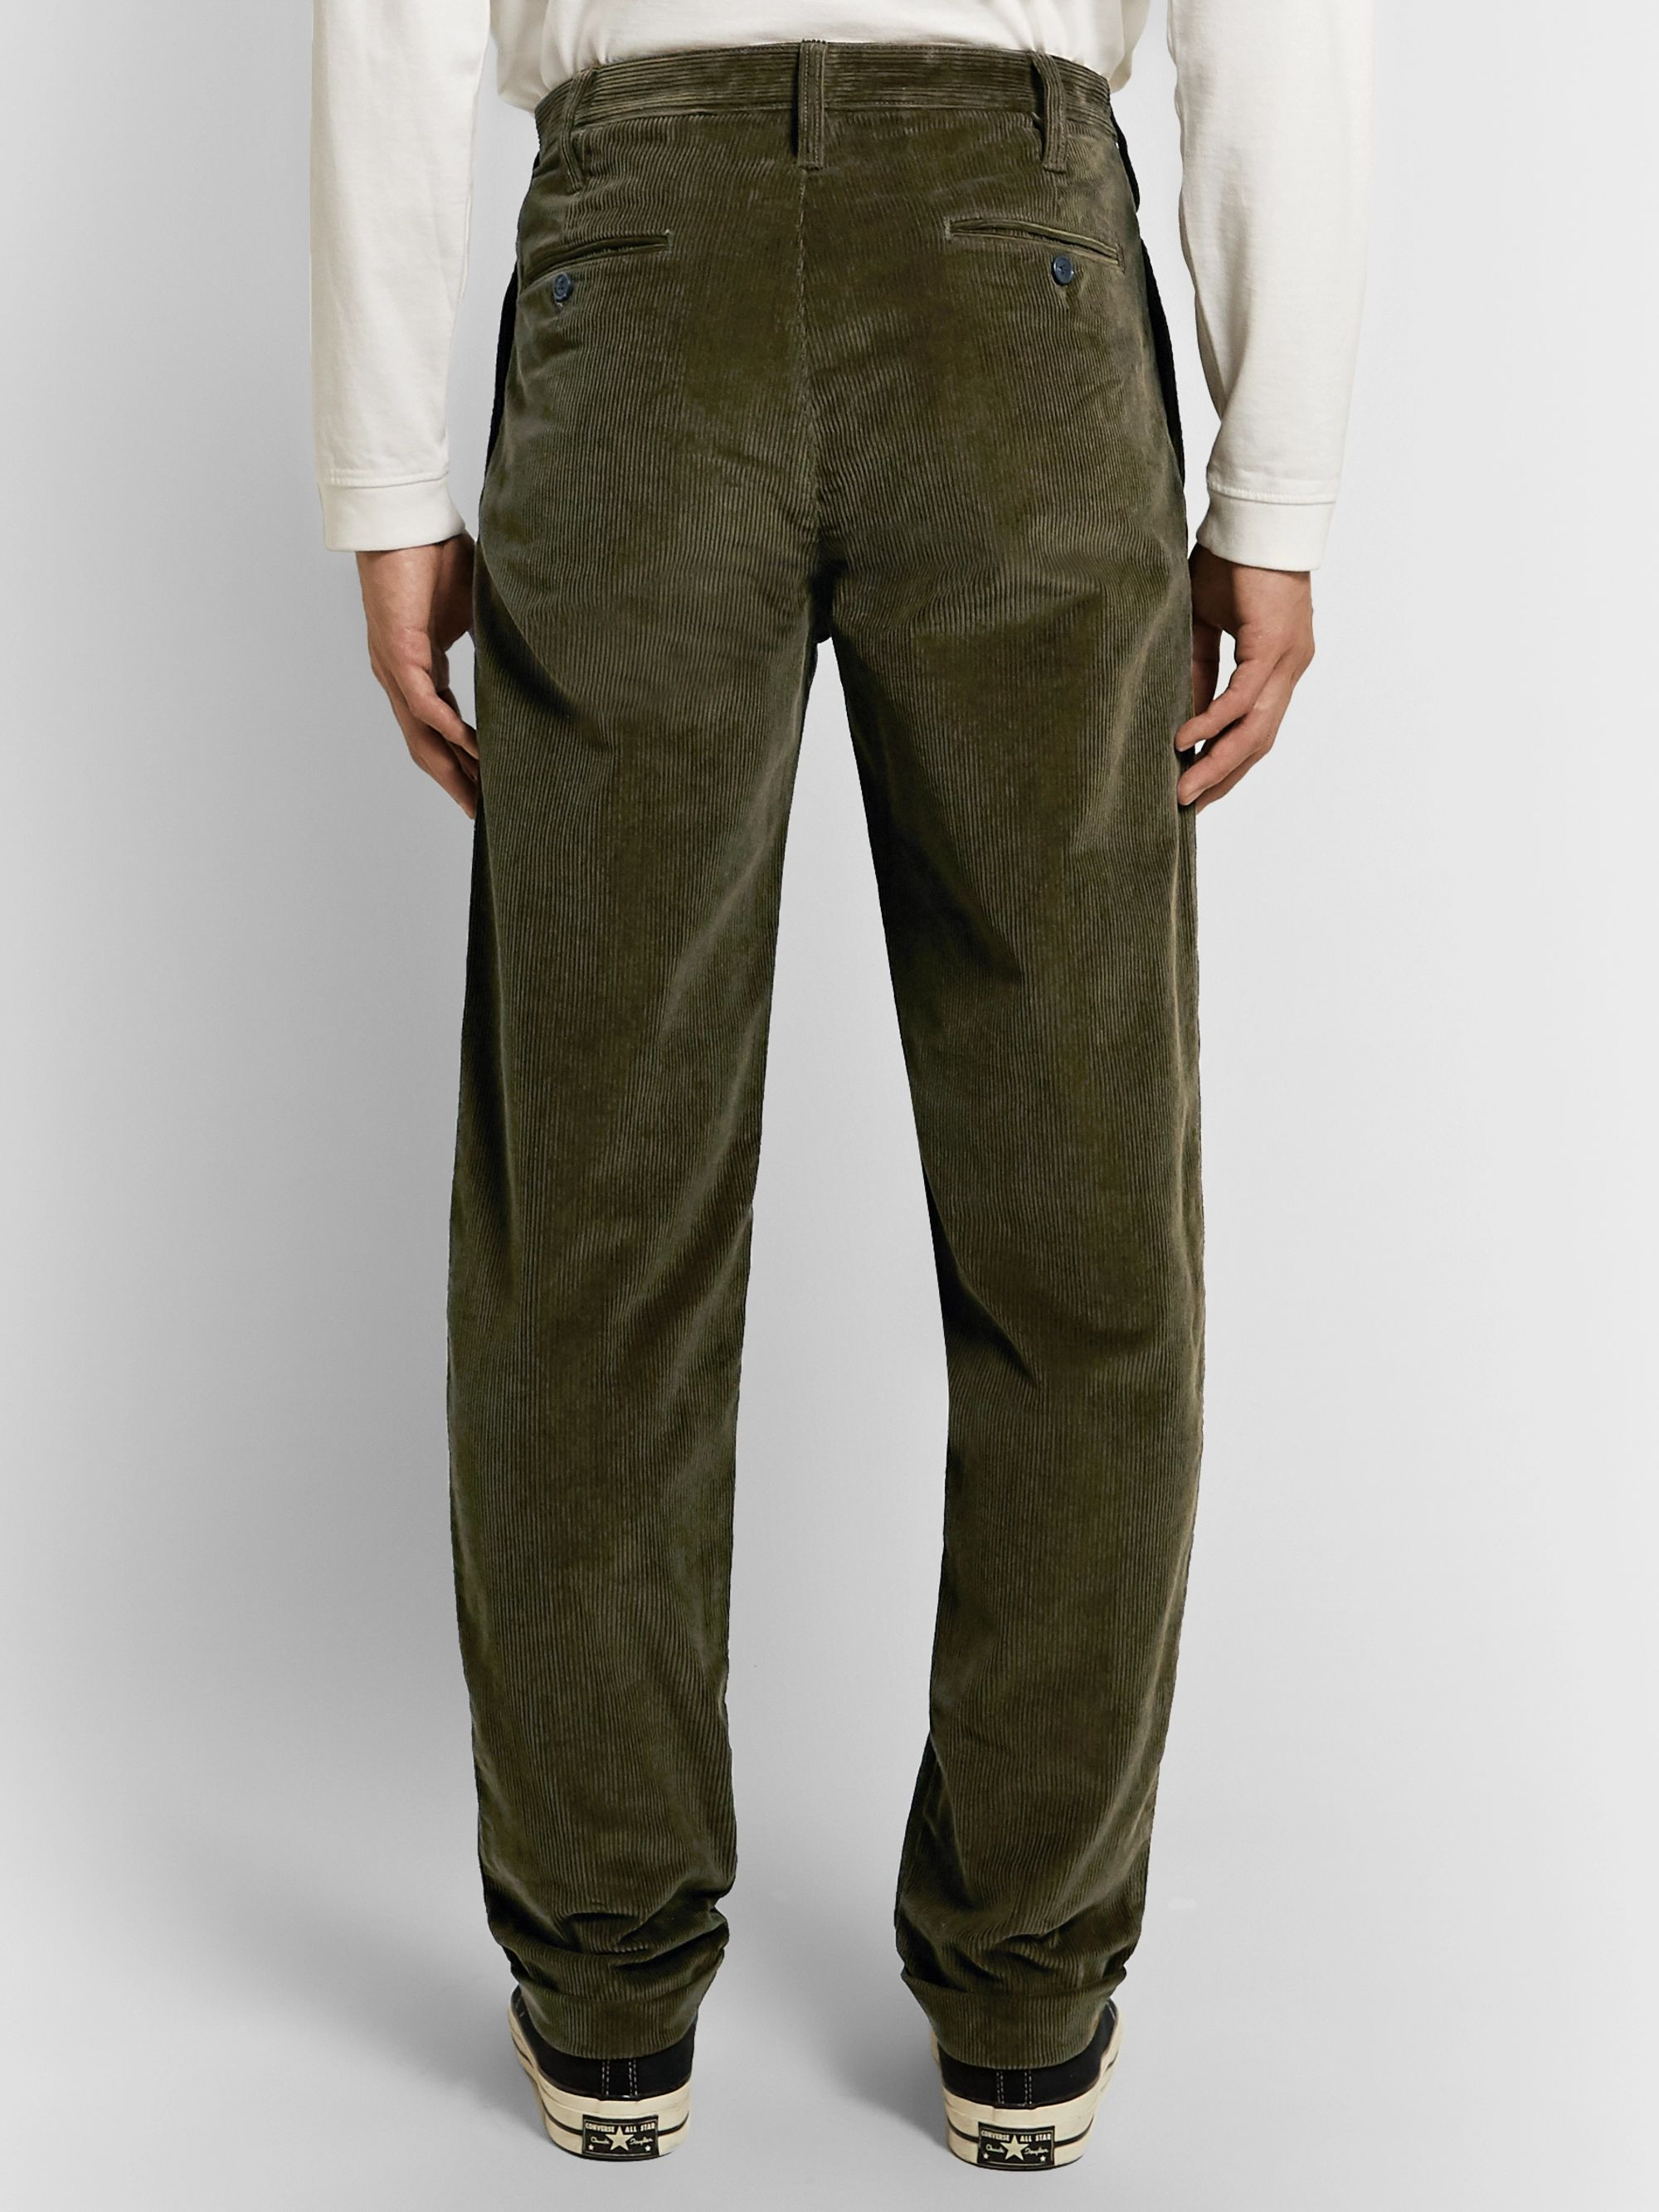 J.Crew Wallace & Barnes Pleated Cotton-Corduroy Trousers